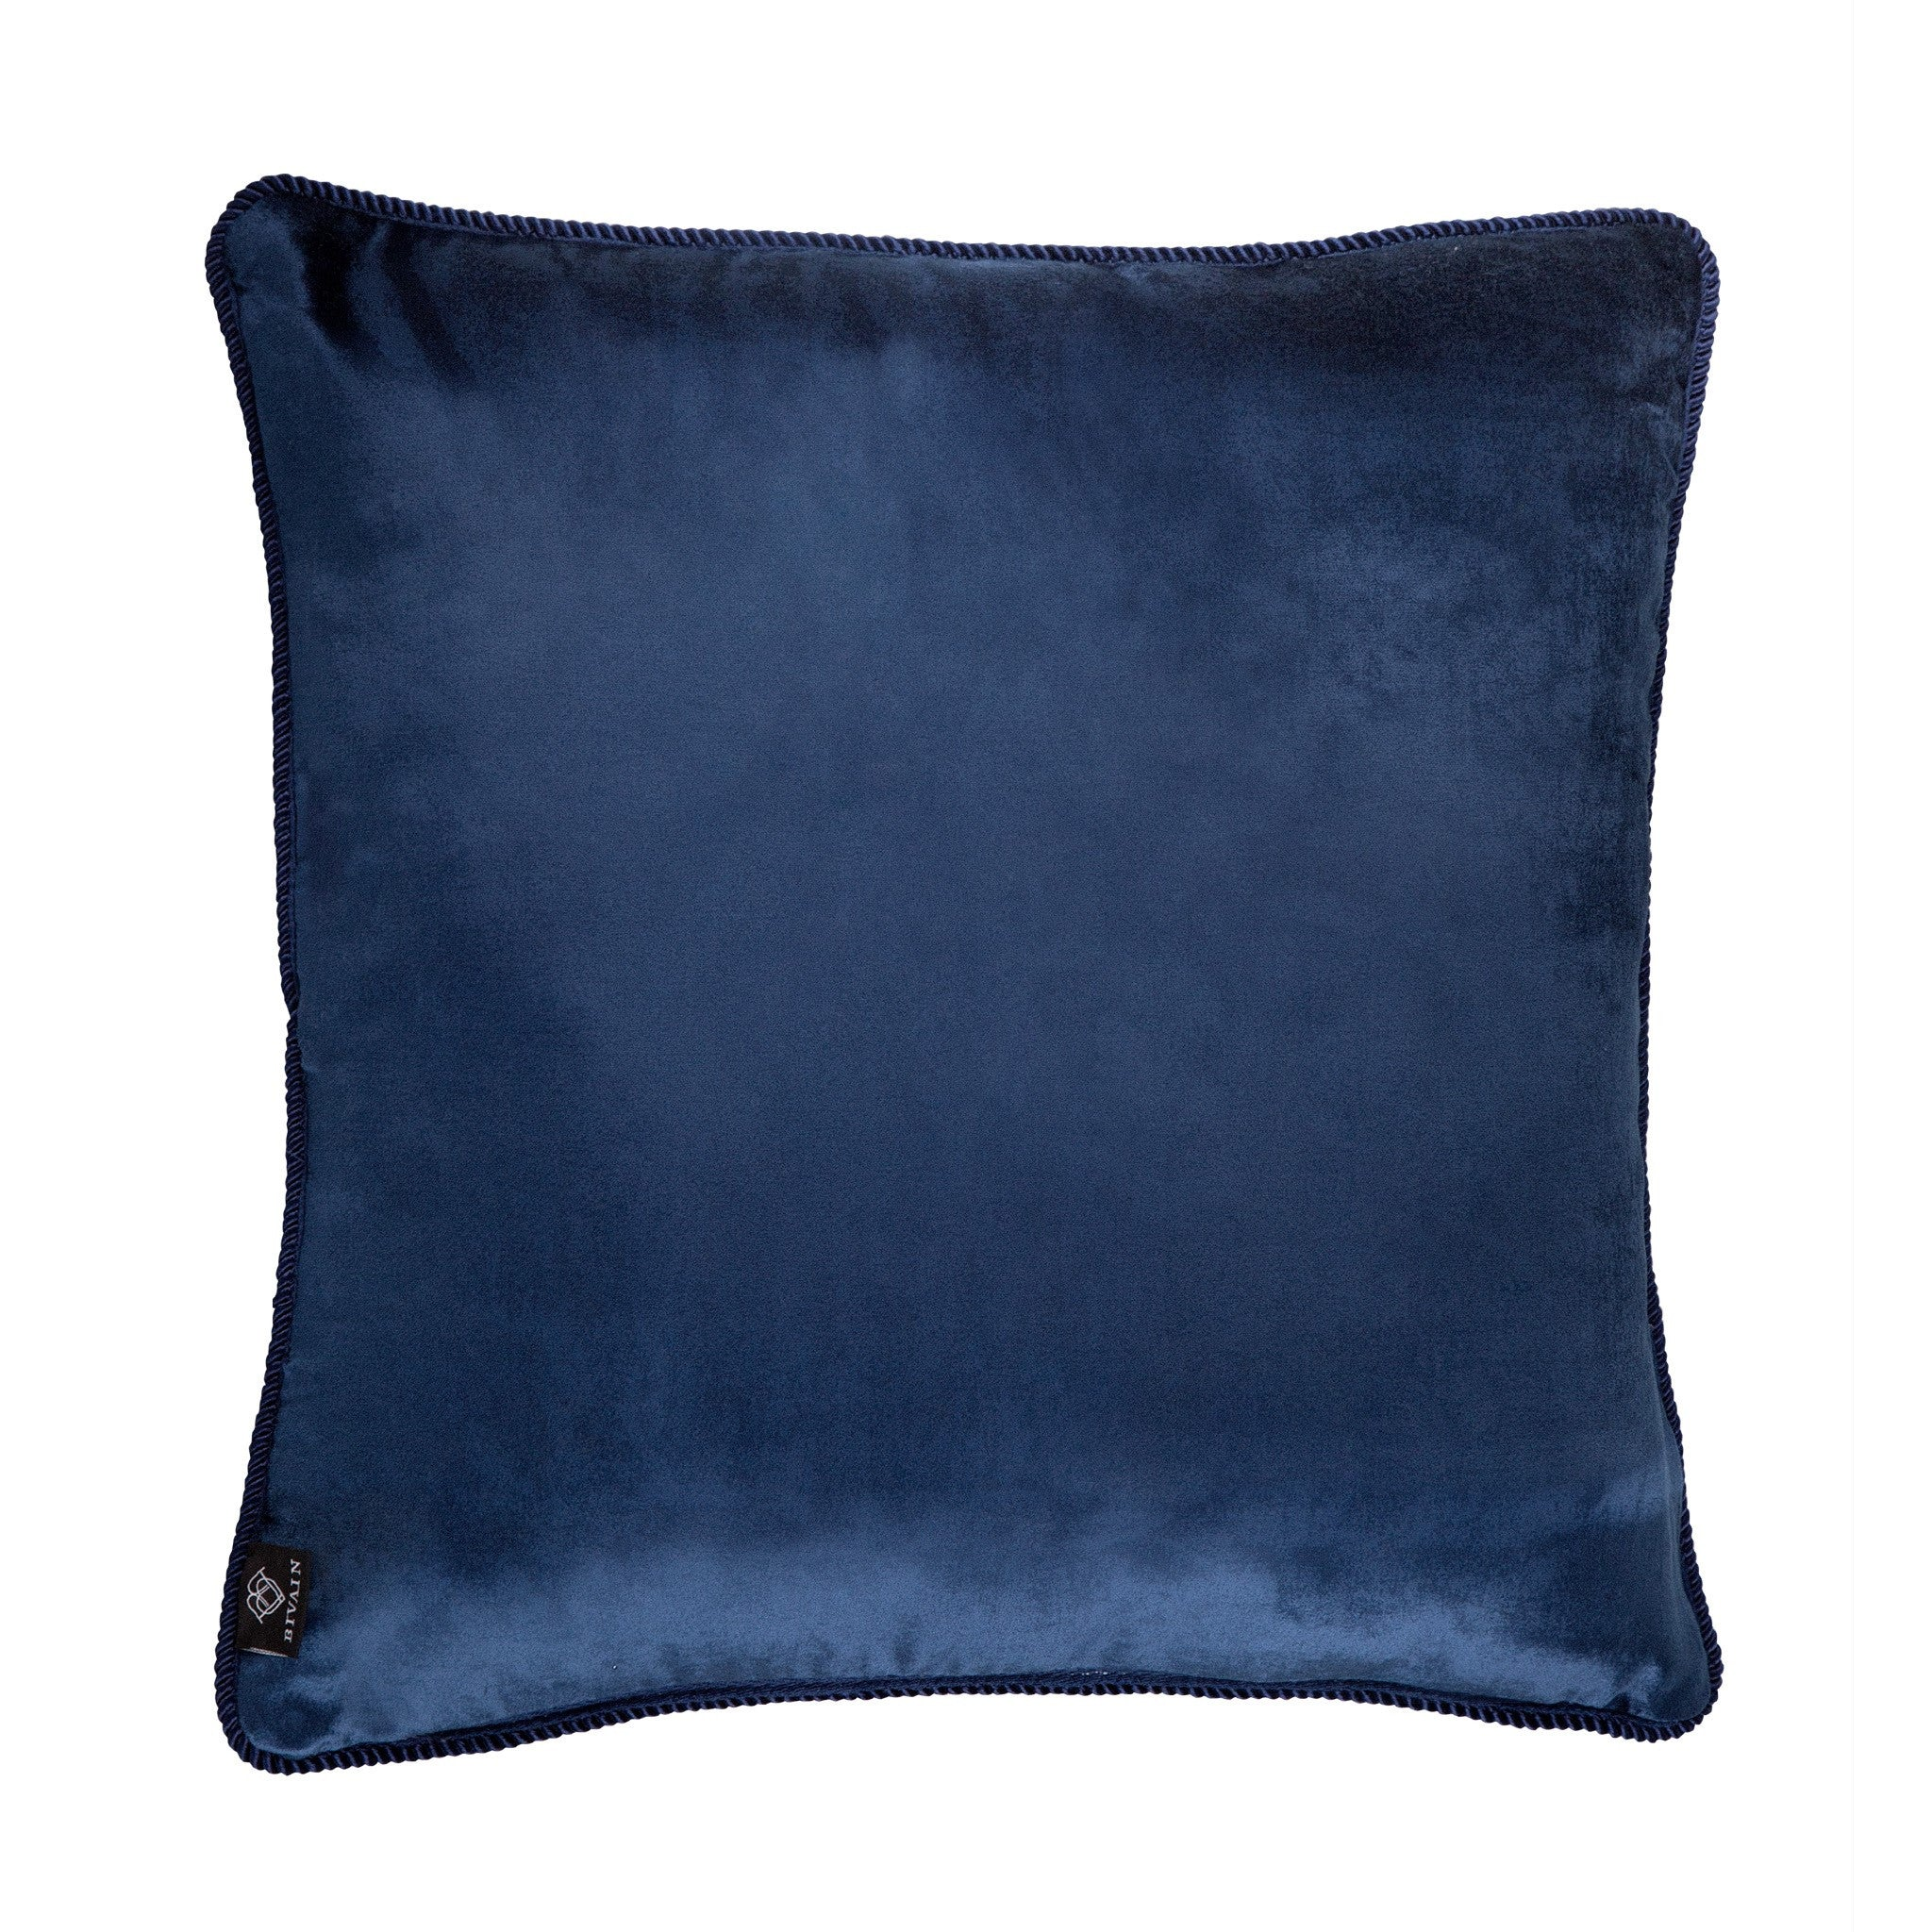 Choose from a wide variety of Navy Blue cushion designs or create your own from scratch! Shop now for custom cushions & much more!